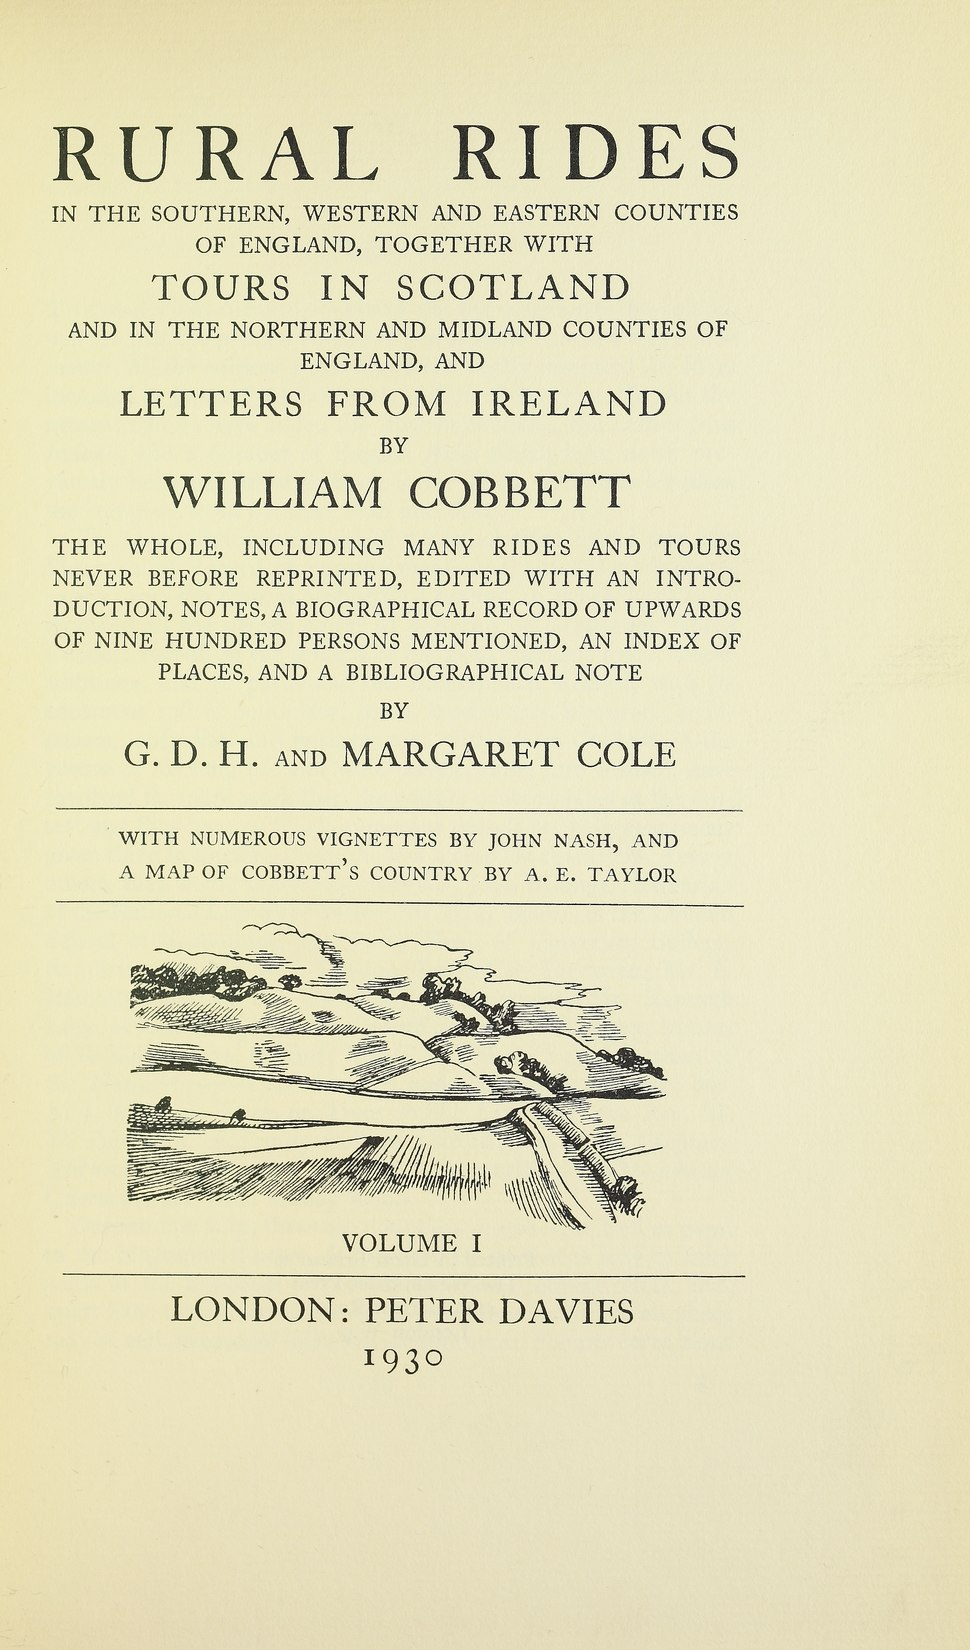 Cobbett - Rural rides in the southern, western and eastern counties of England, 1930 - 5214769